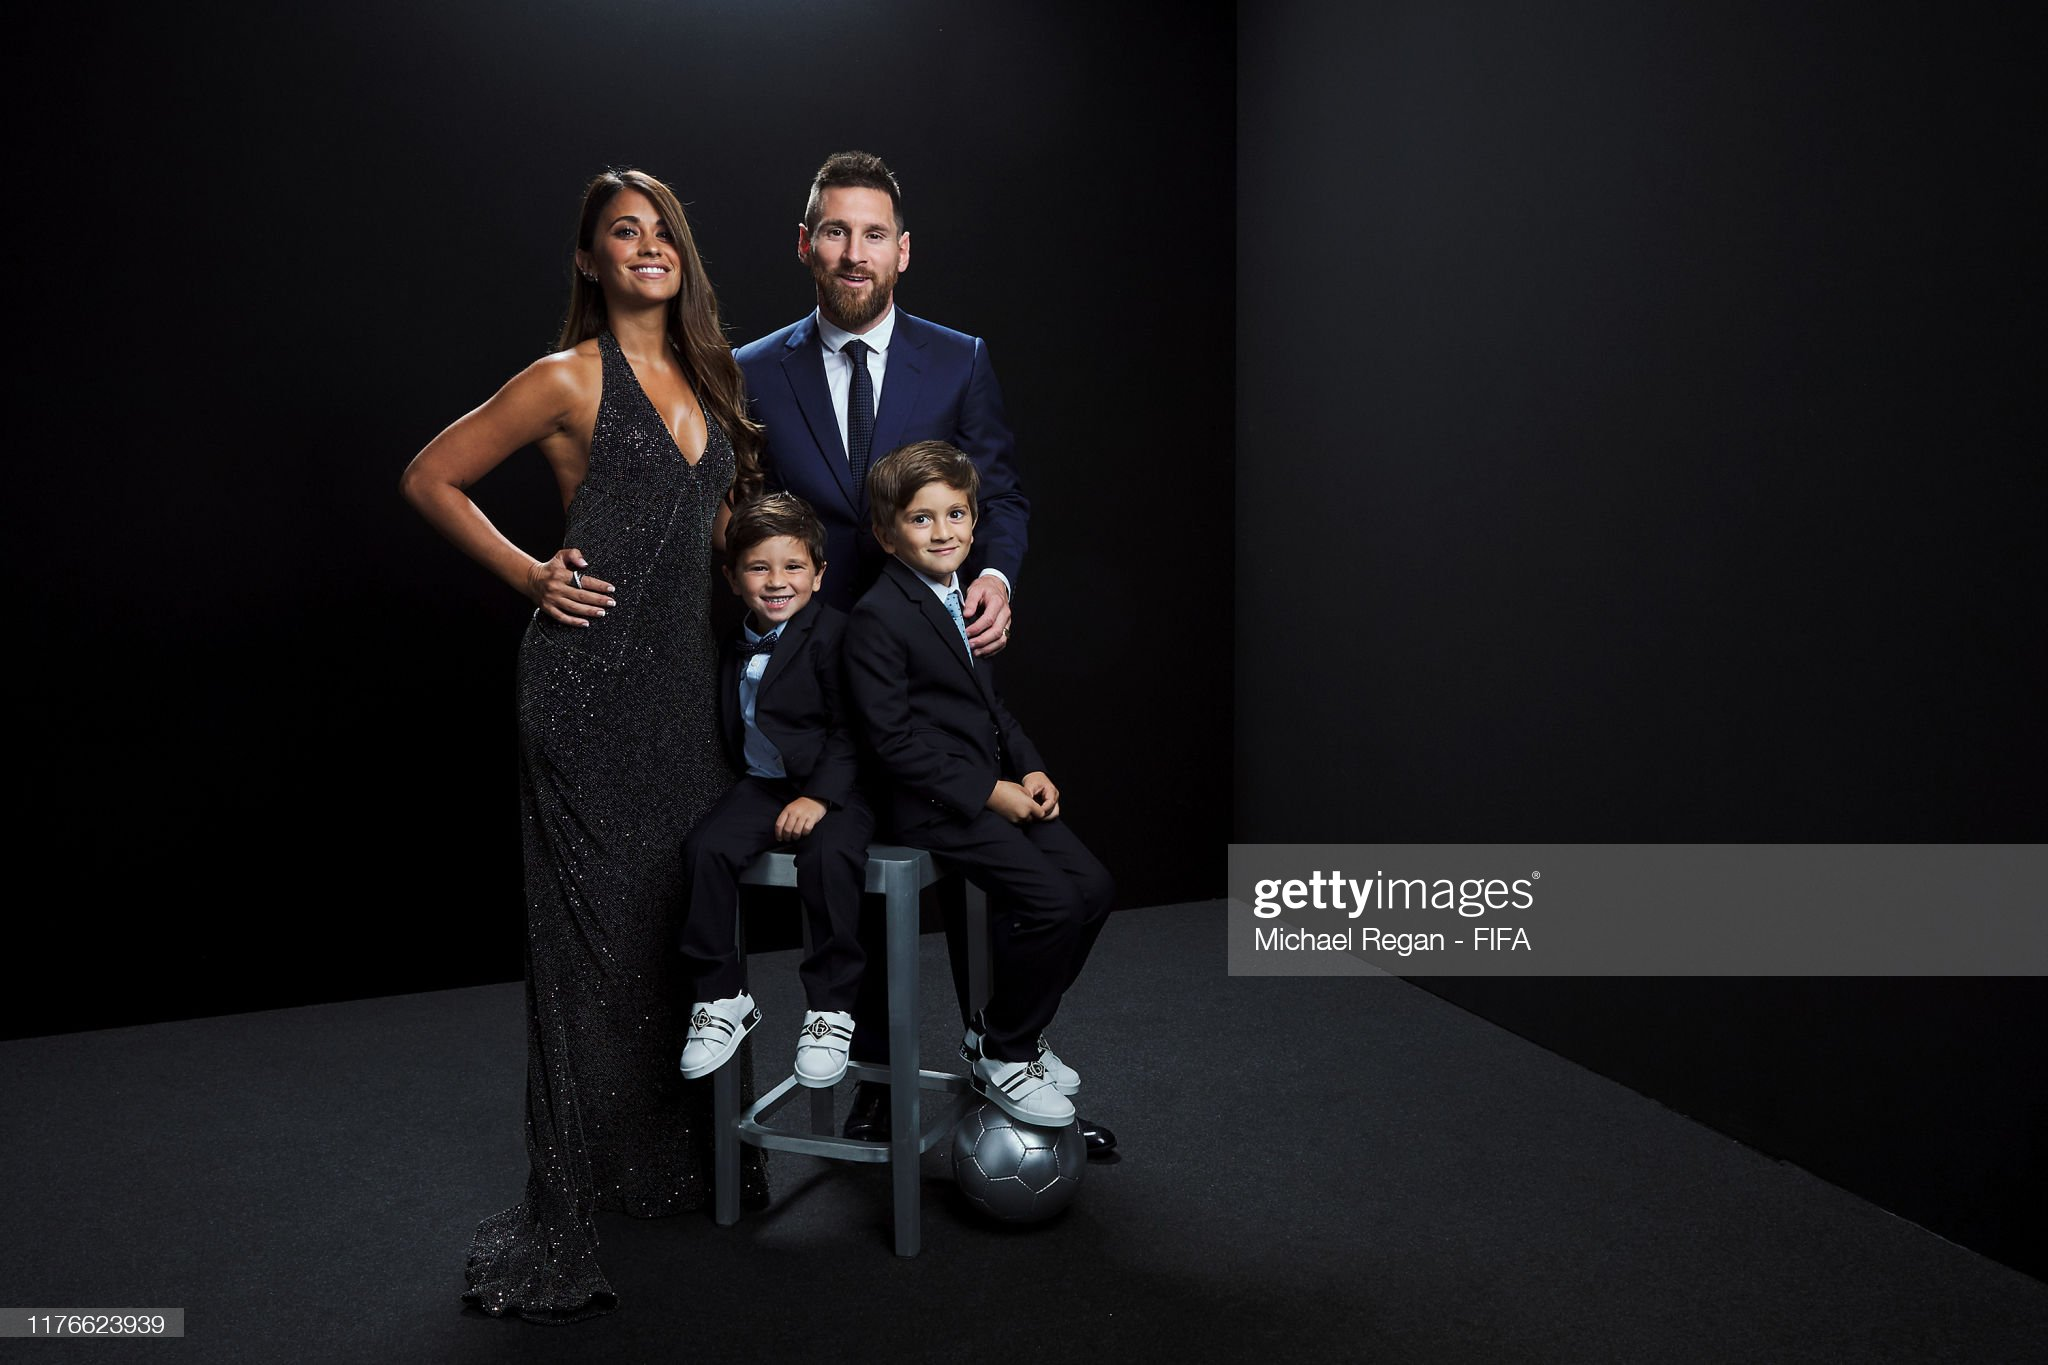 The Best FIFA Football Awards 2019 The-best-fifa-mens-player-award-lionel-messi-of-fc-barcelona-and-a-picture-id1176623939?s=2048x2048